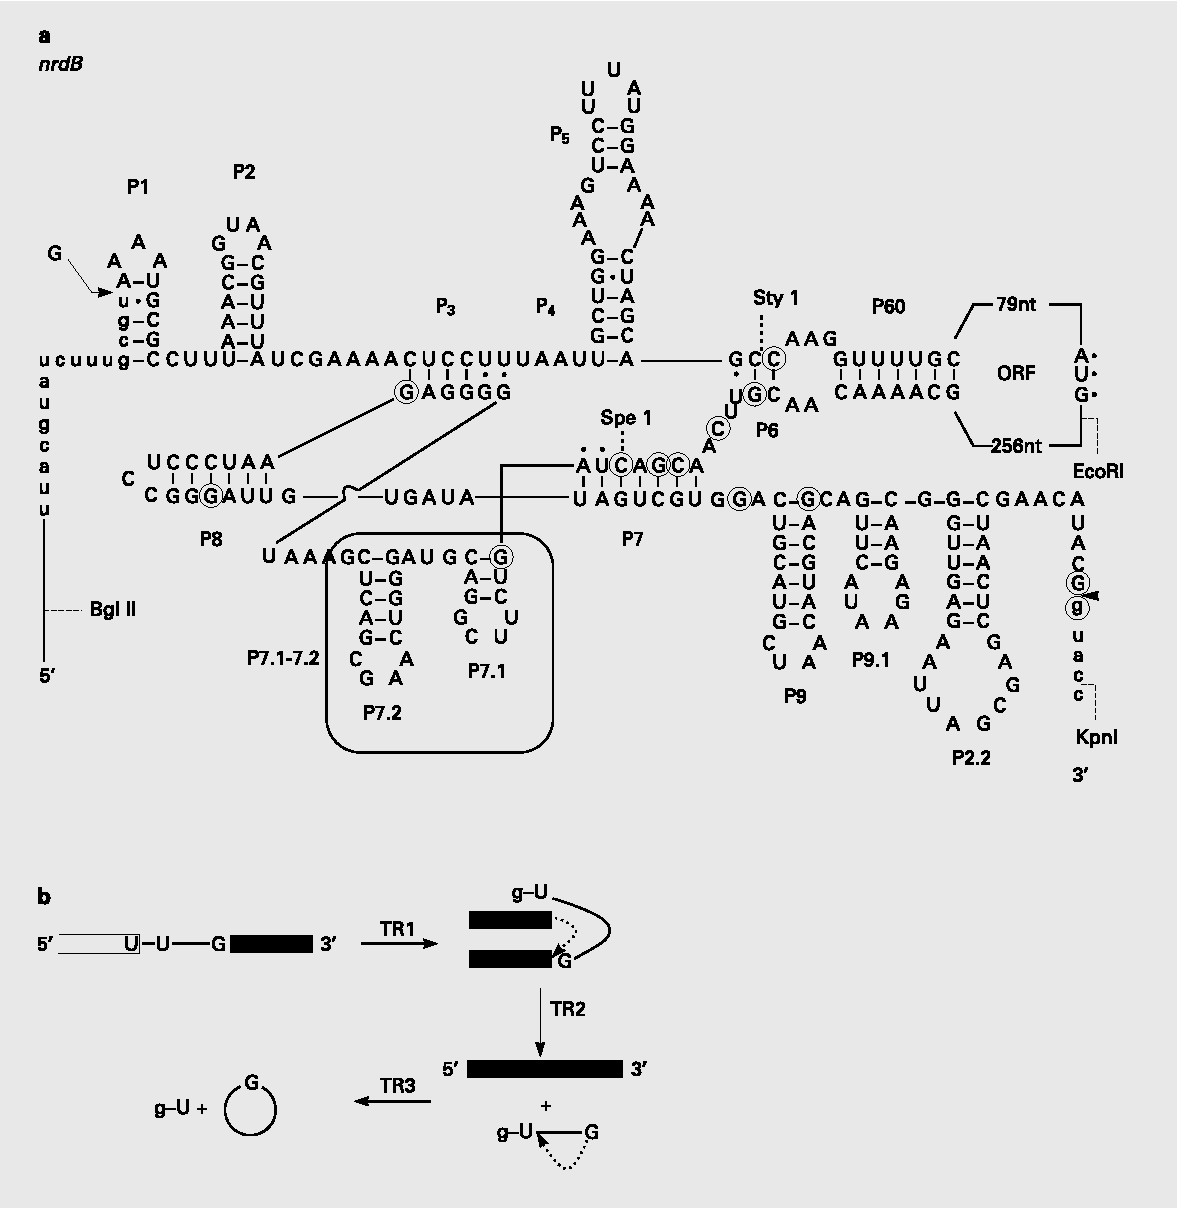 Figure 2 From Ribozymes A Modern Tool In Medicine Semantic Scholar T4 1 Block Diagram Secondary Structures Of Bacteriophage Group I Nrdb Intron The